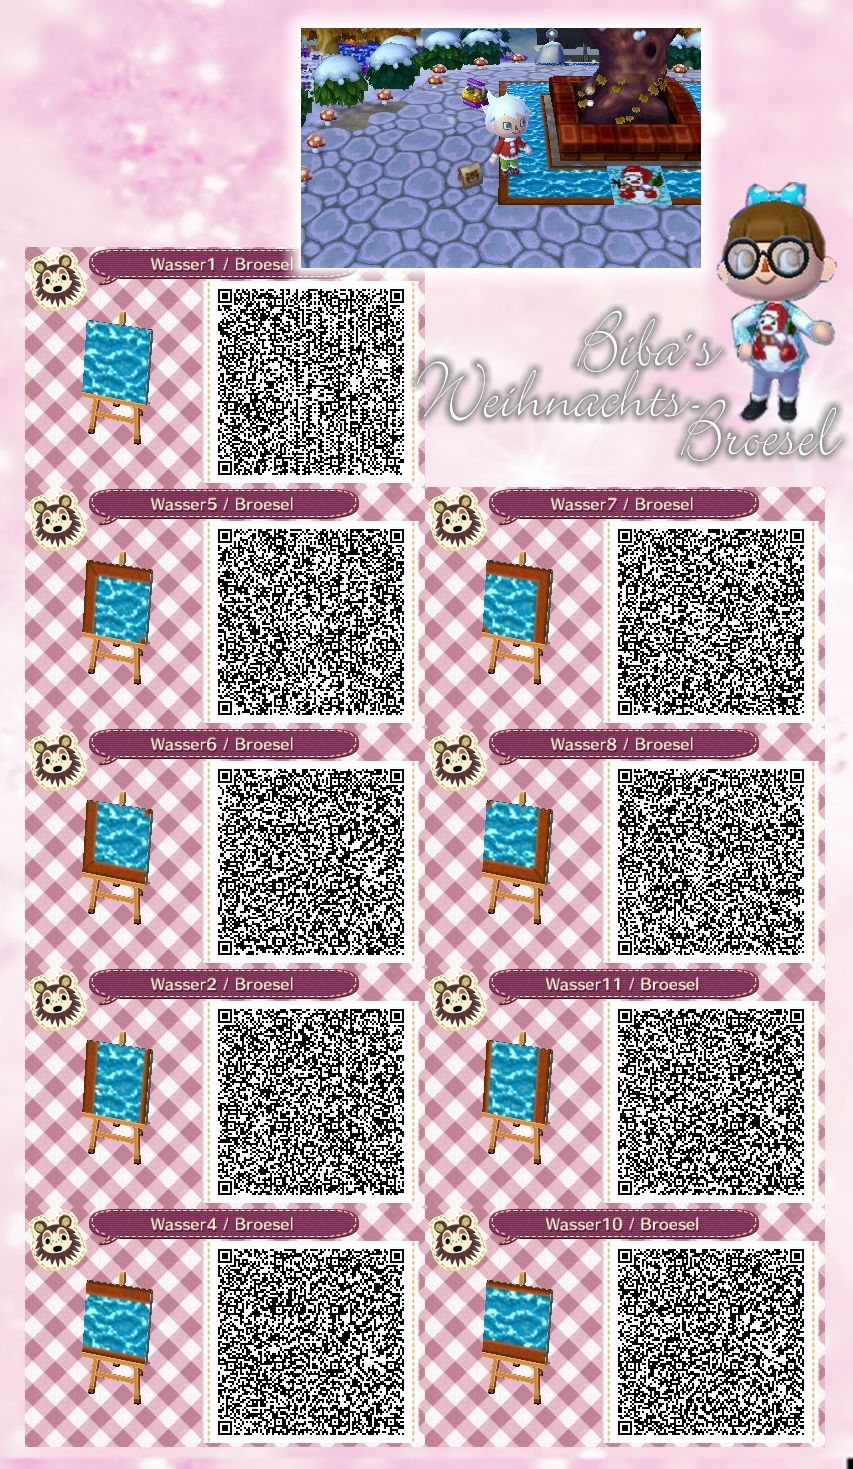 Wasser Water Path Weg Qr Acnl Broesel Animal Crossing